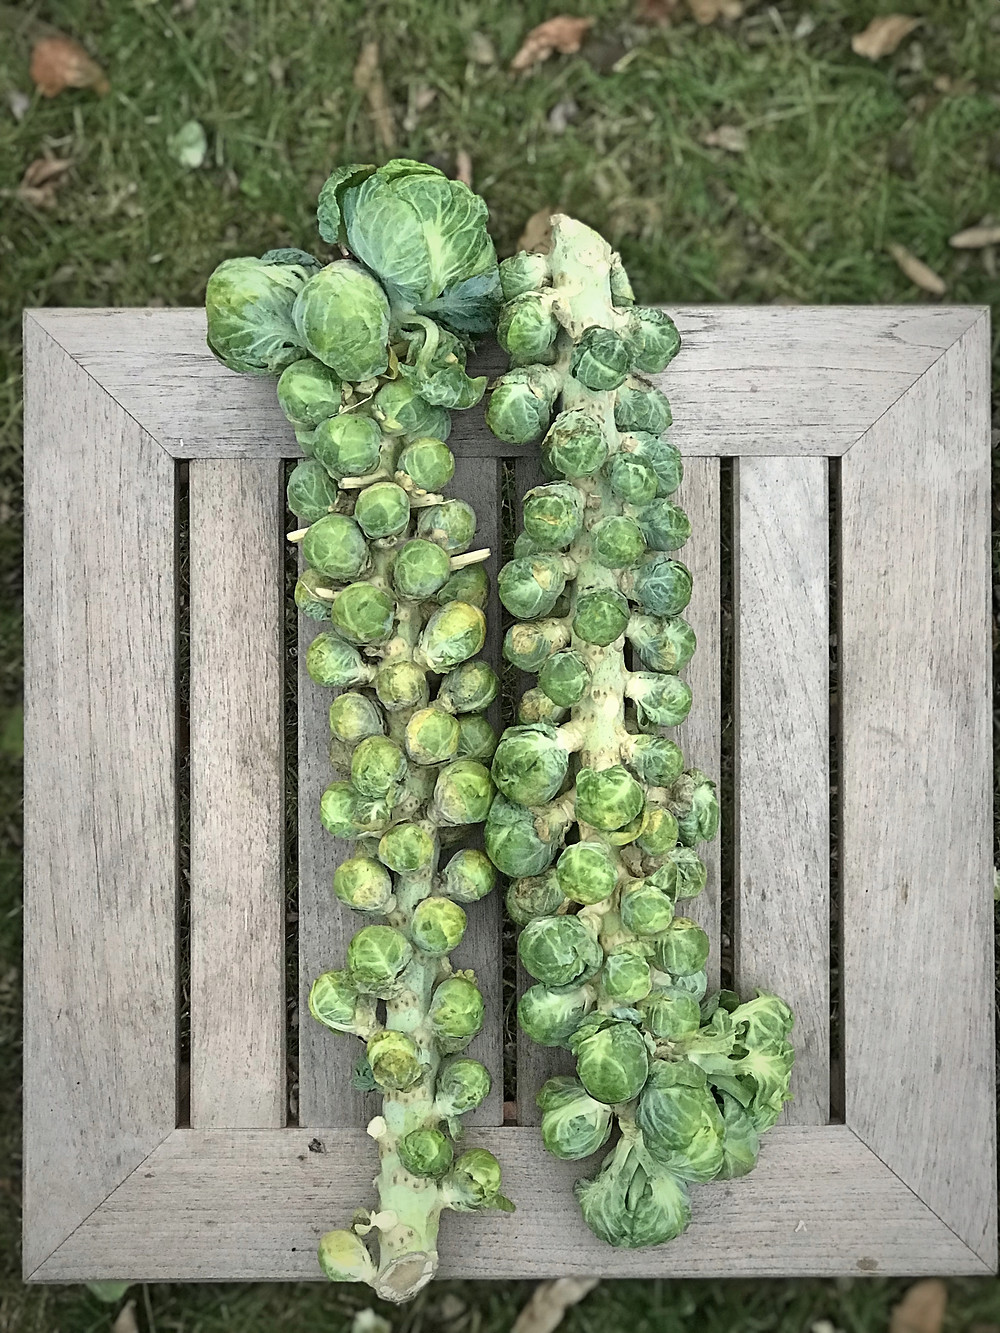 Brussels Sprouts on the stalk.